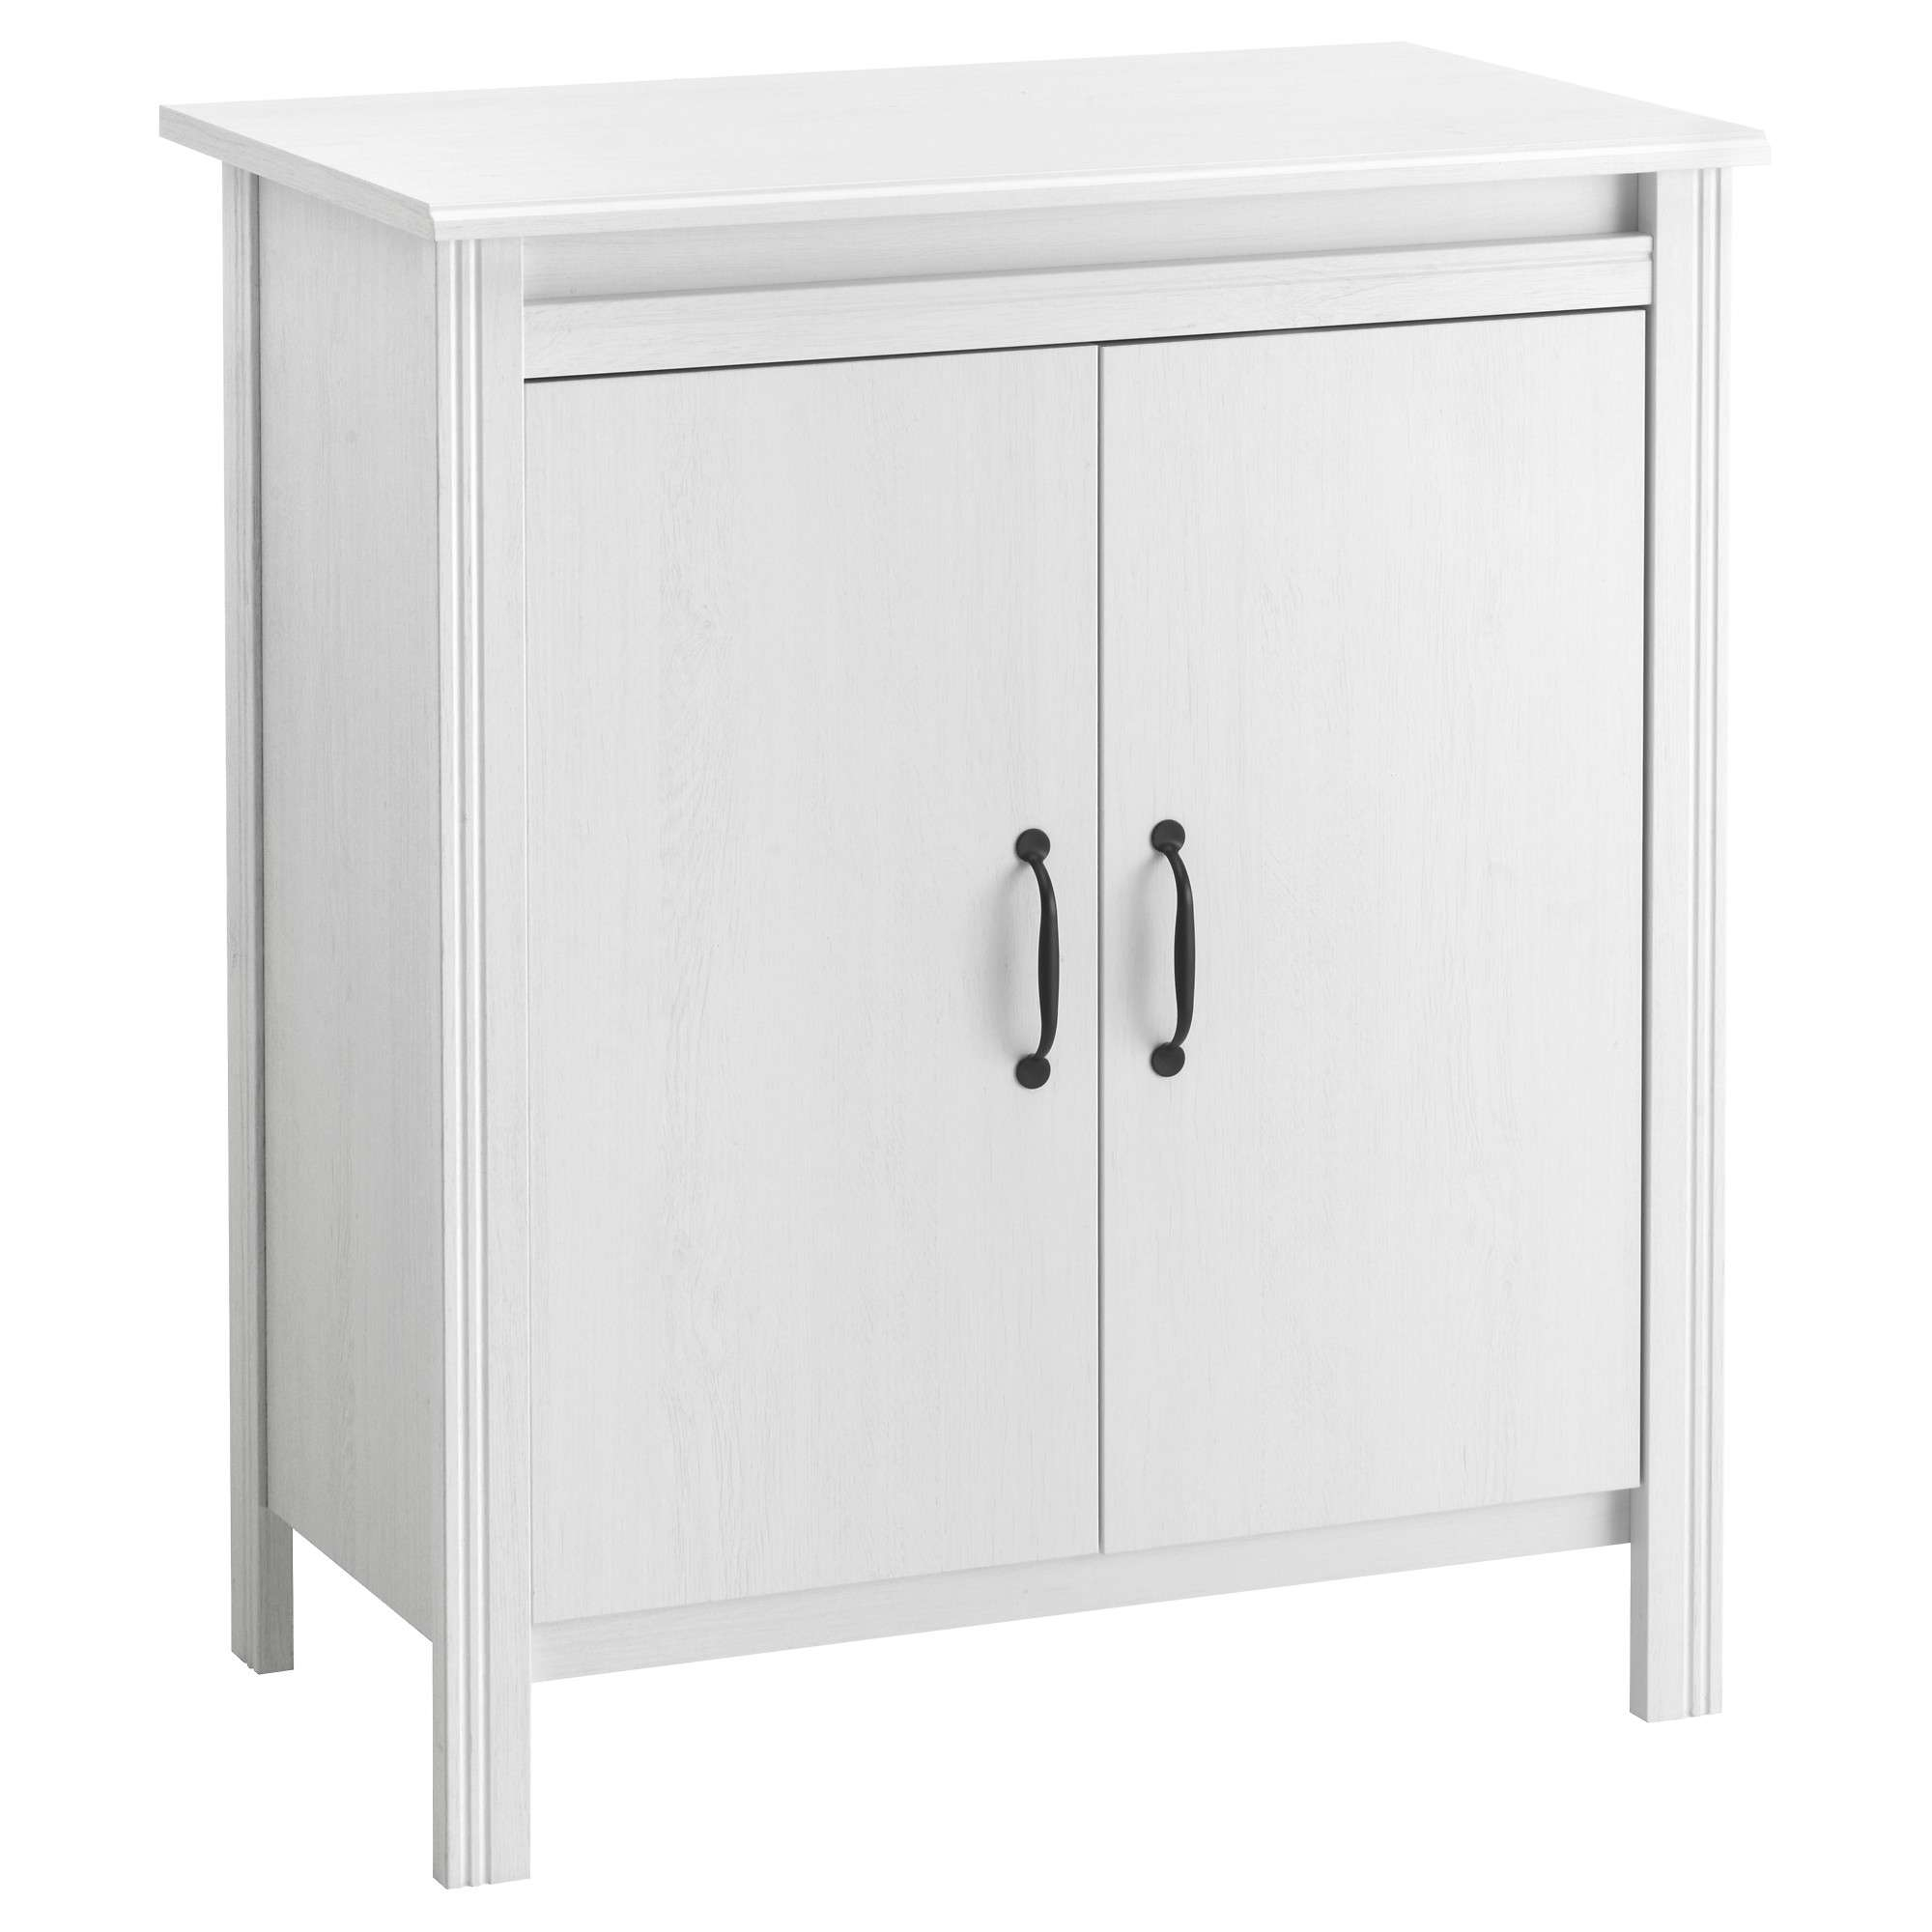 Cabinets & Sideboards – Ikea Intended For Deep Sideboards (View 6 of 20)